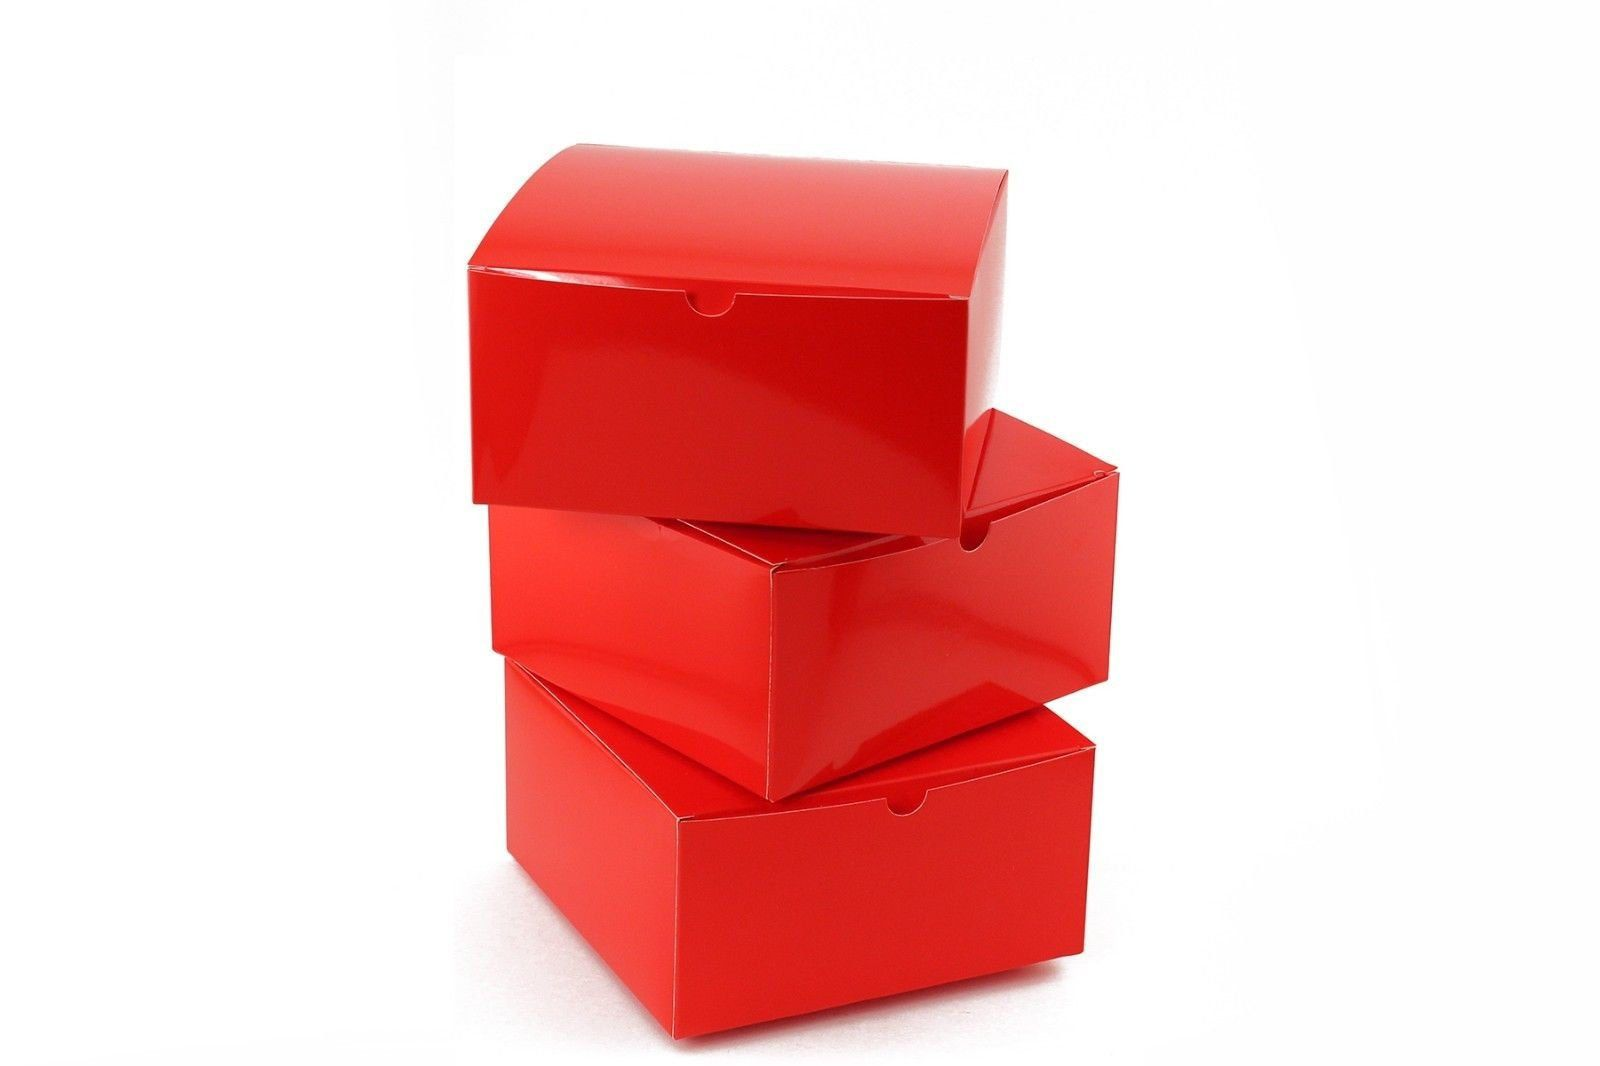 10pc Sunkist Red Paper Gift Boxes With Lids 8 X 8 X 4 Inches Holiday Adult Partys Christmas Boxes In 2020 Gift Boxes With Lids Paper Gift Box Paper Gifts